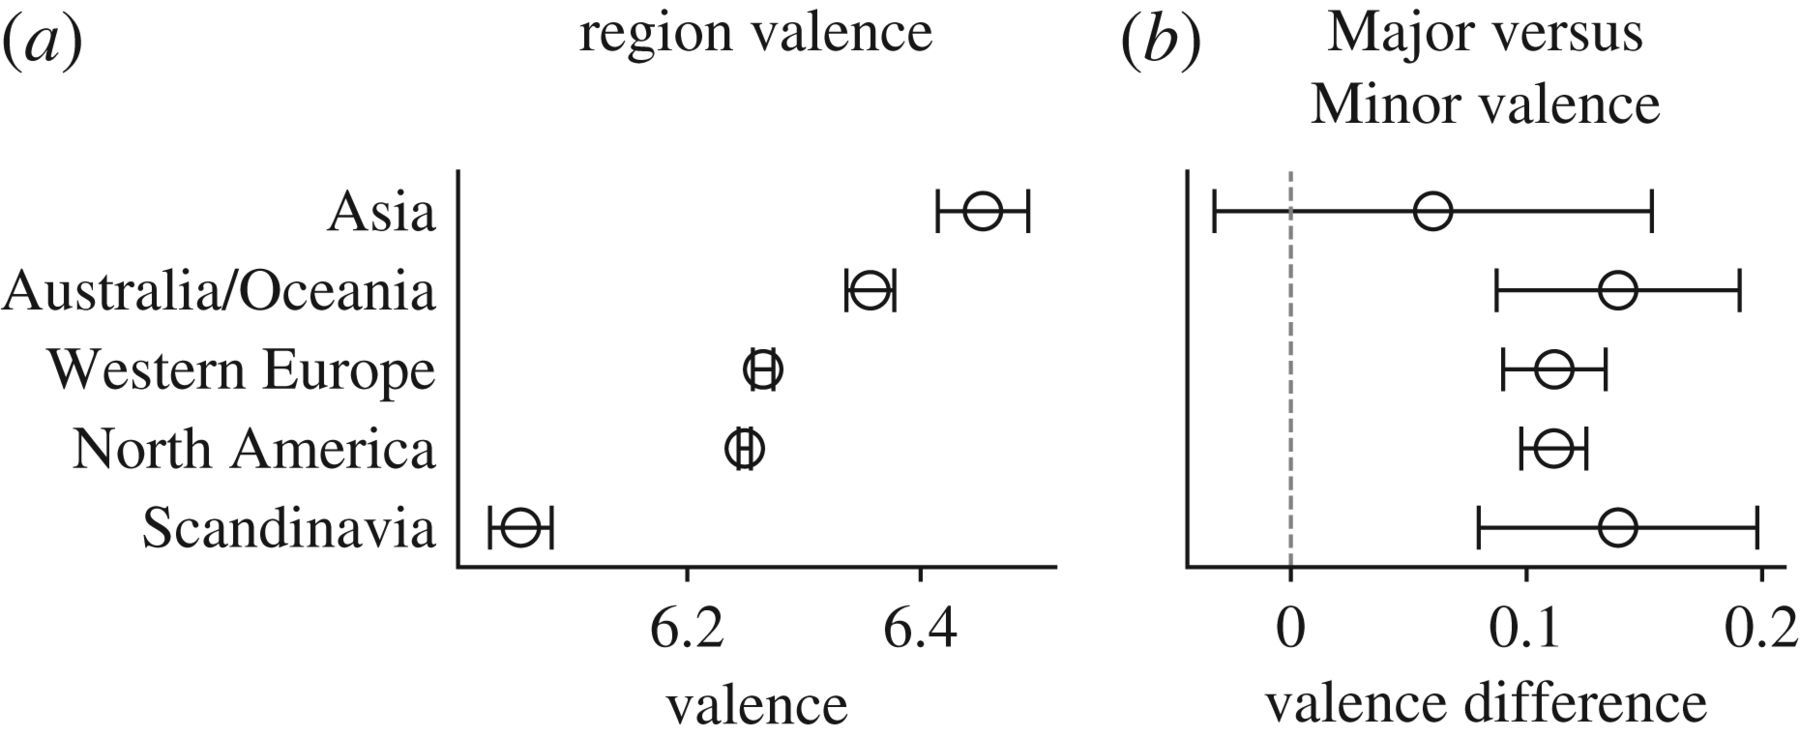 The Minor fall, the Major lift: inferring emotional valence